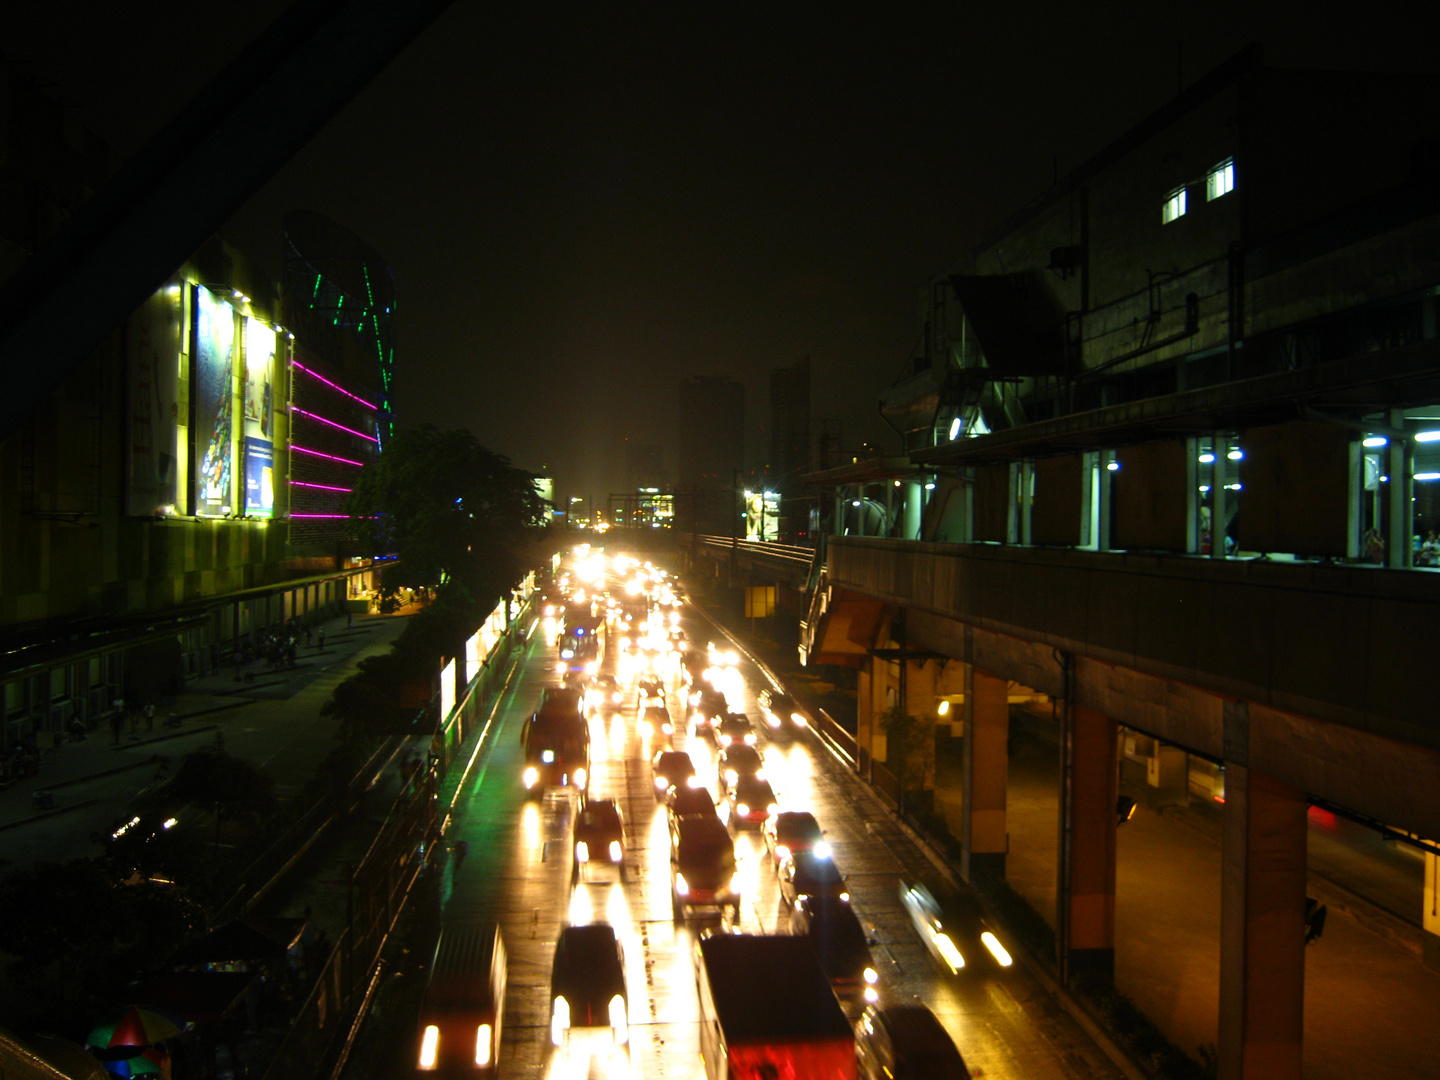 EDSA at Night - A View from a Window at a Railway Station